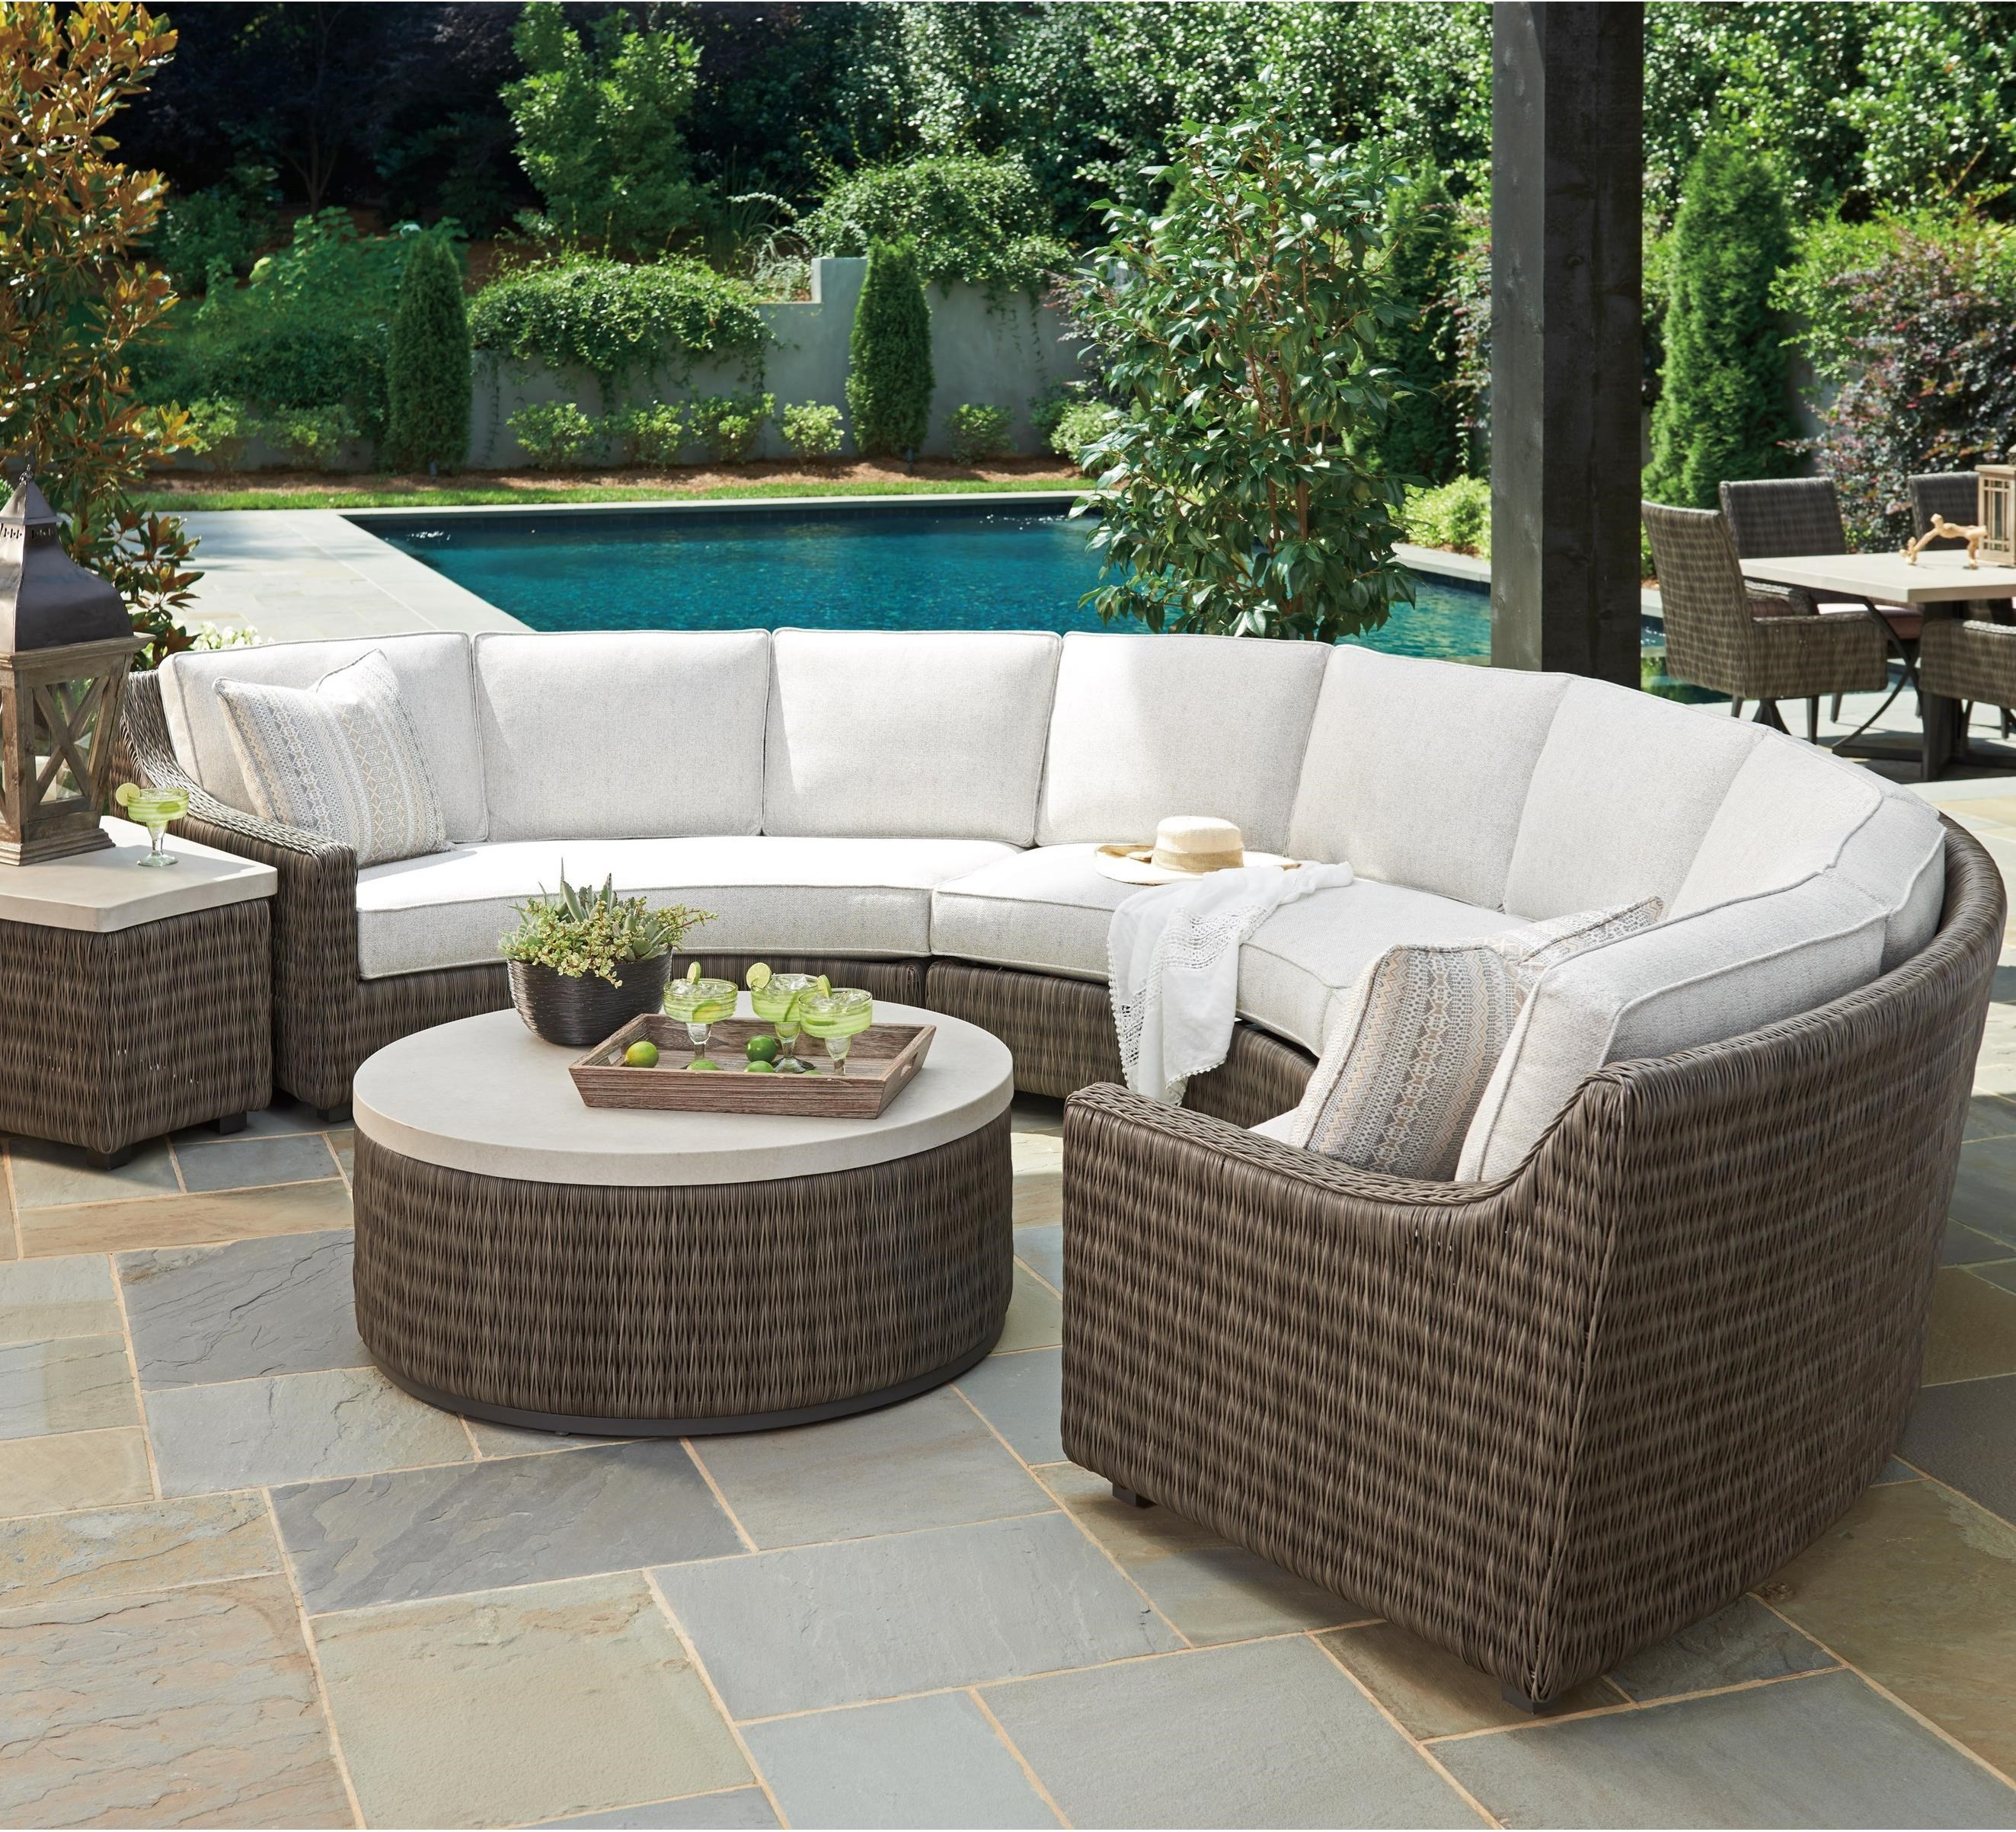 Tommy Bahama Outdoor Living Cypress Point Ocean Terrace 6 Seat Outdoor Curved Sectional Sofa With Weatherproof Box Cushions Baer S Furniture Outdoor Sectional Sofa Groups